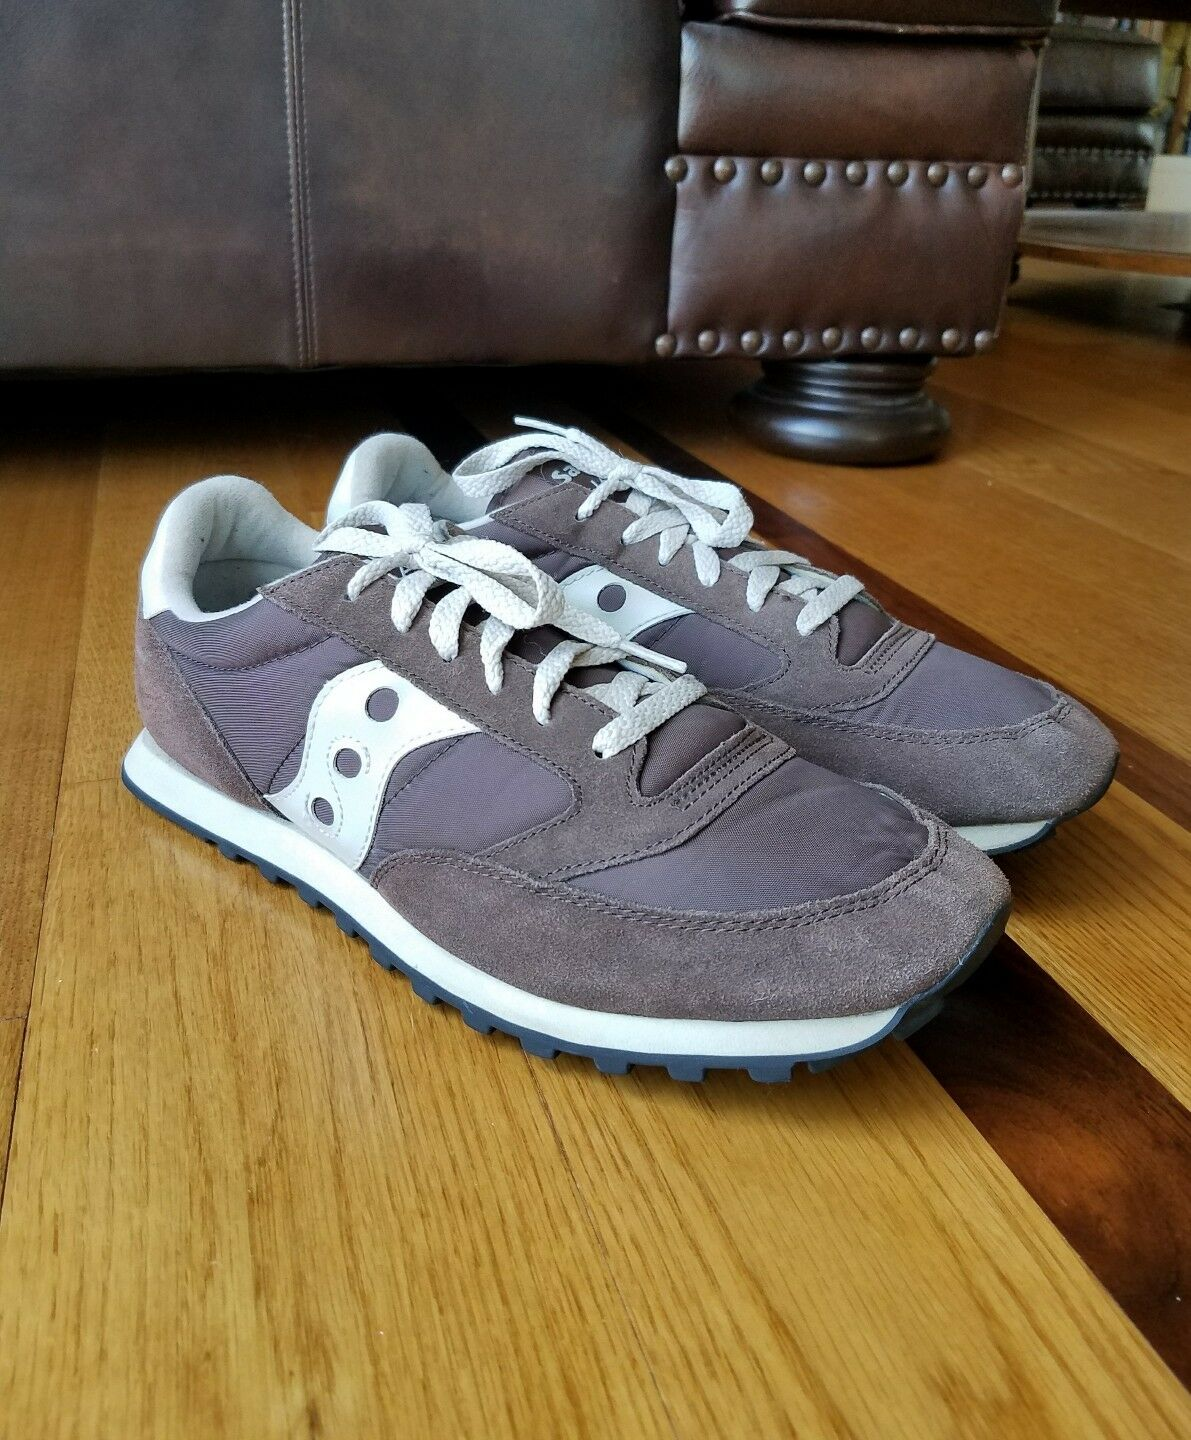 Saucony Jazz Mens Low Pro Chocolate Brown Suede & Nylon Sneakers shoes Size 13